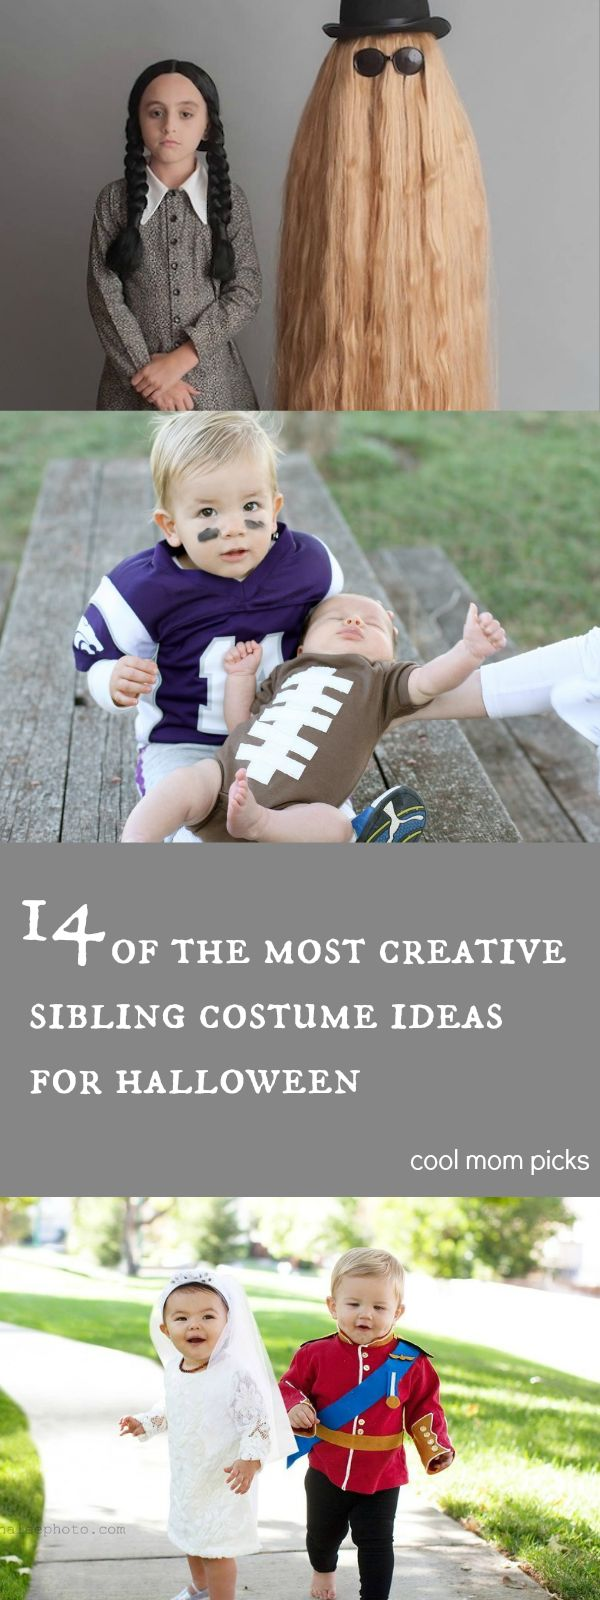 14 creative, cool sibling Halloween costume ideas for kids of any age. Love all these ideas!